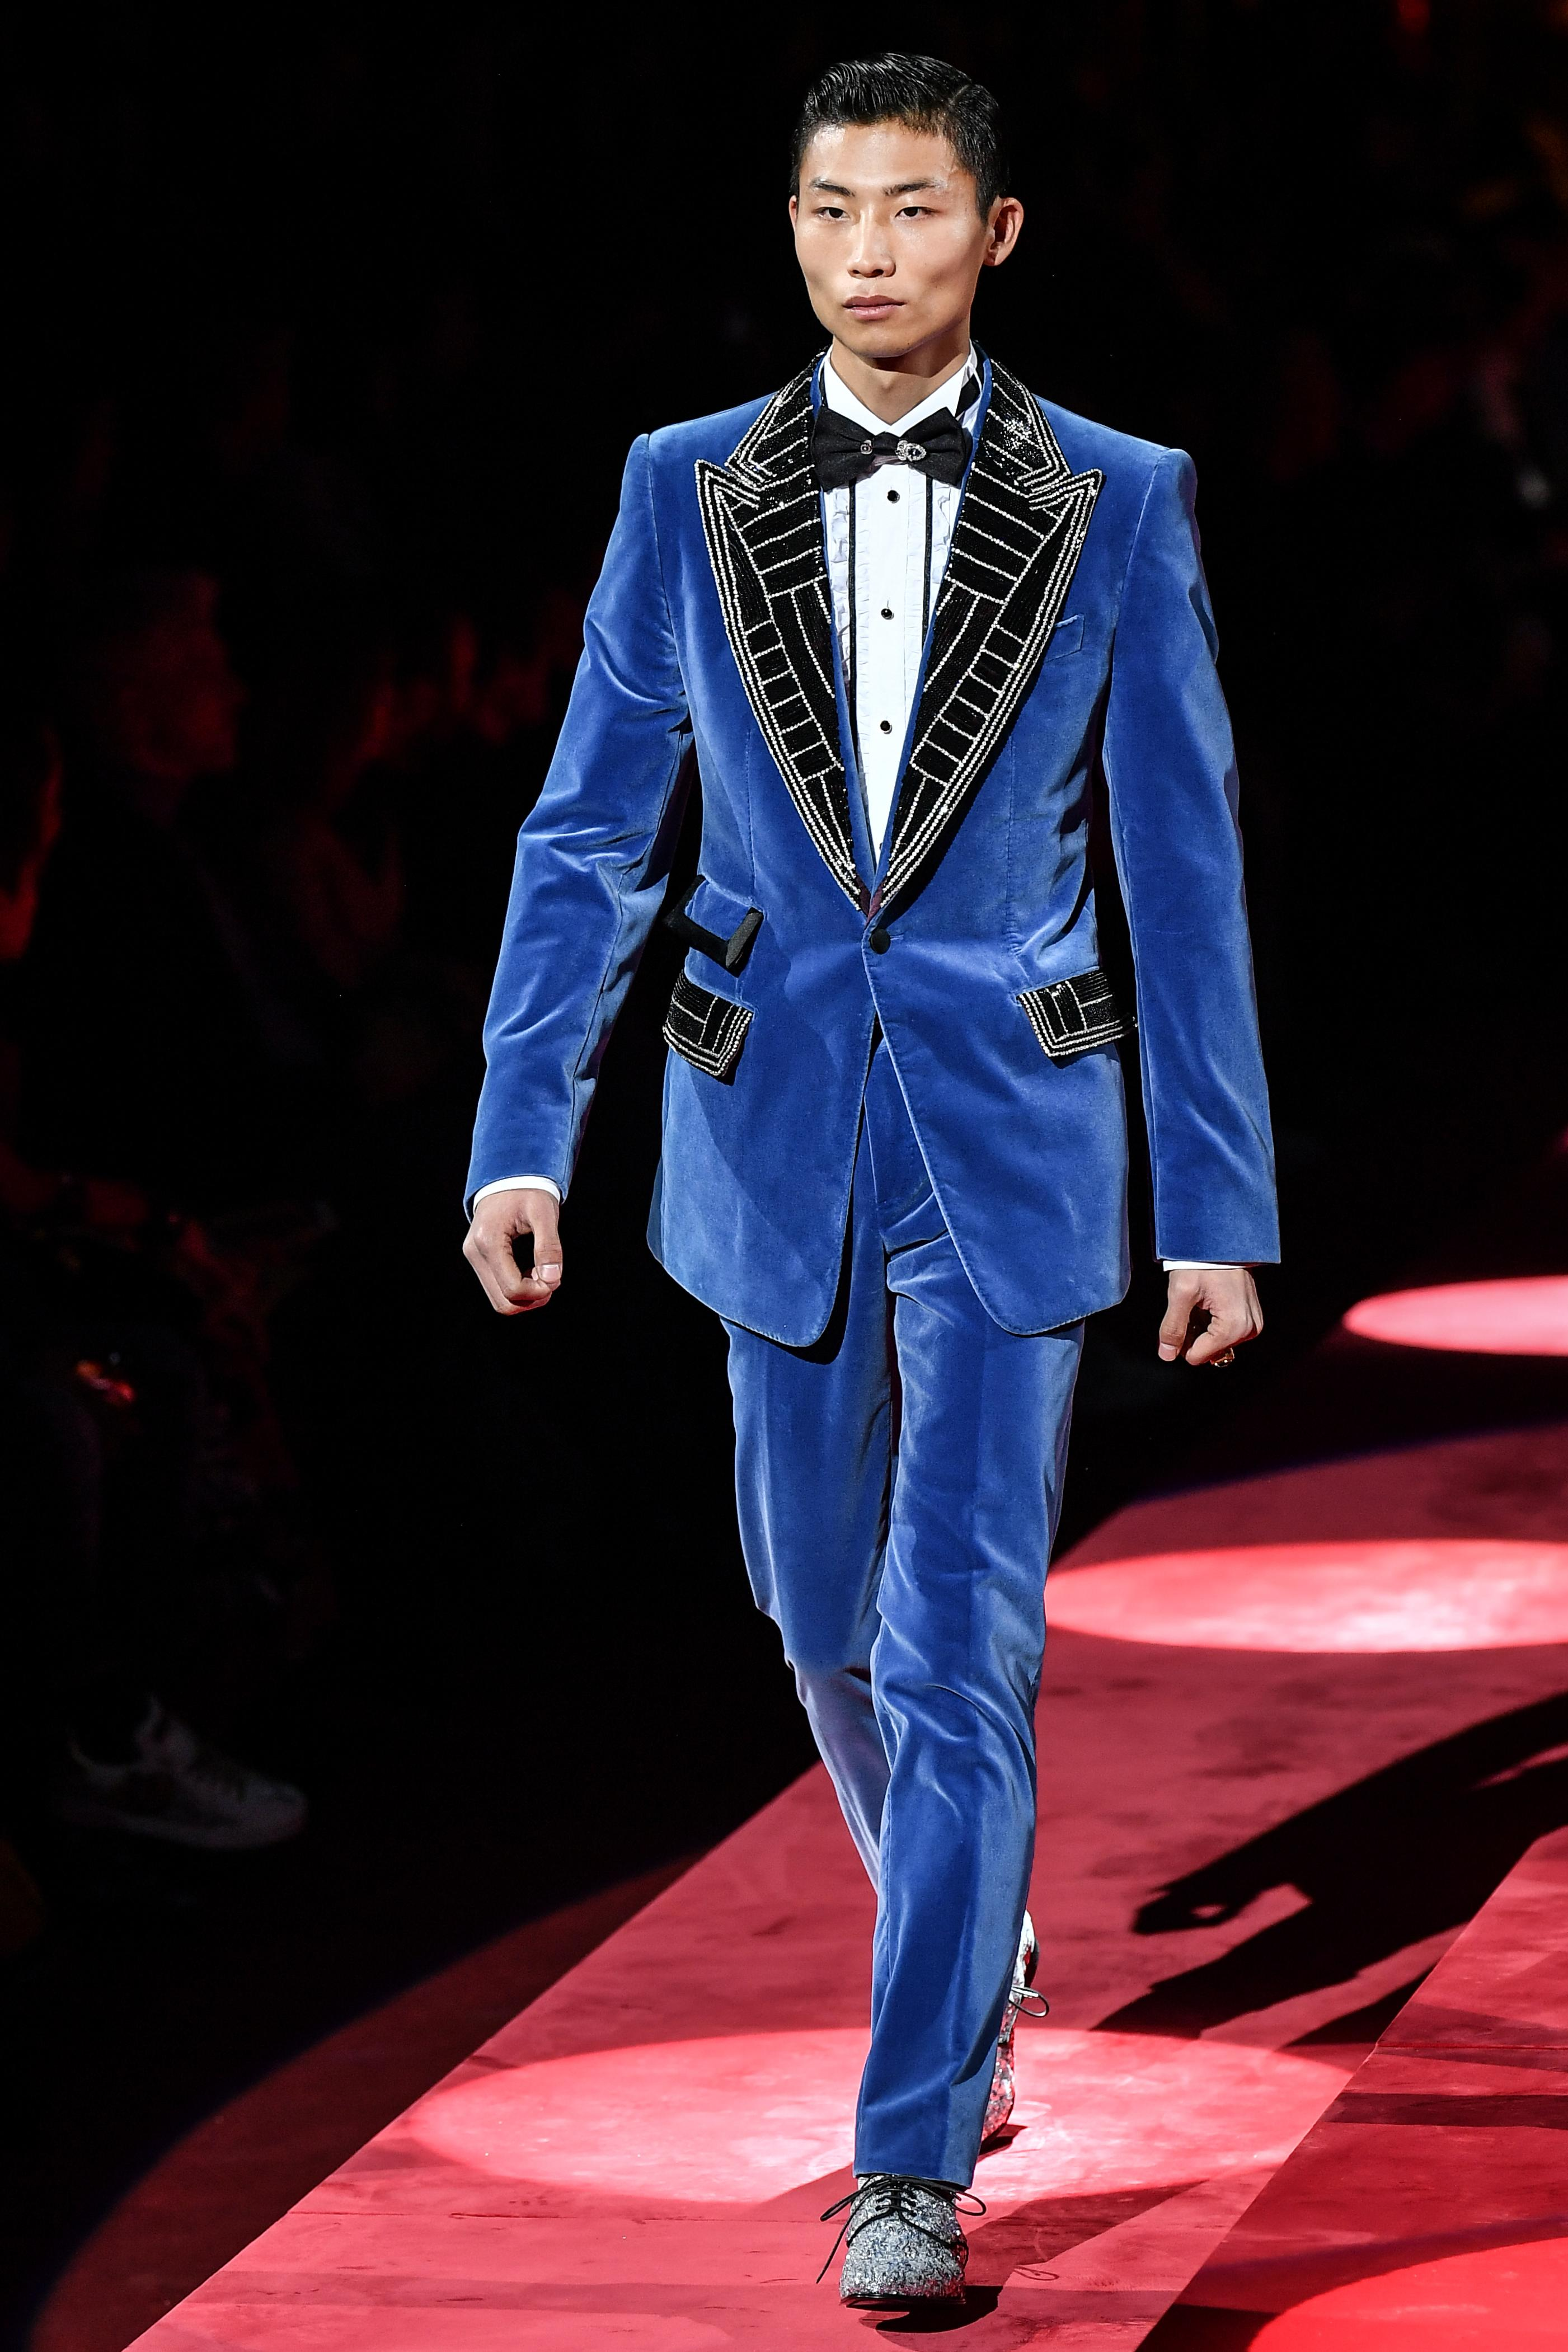 2020 Suit Trends.Three Trends Seen On The Men S Fashion Week Runways